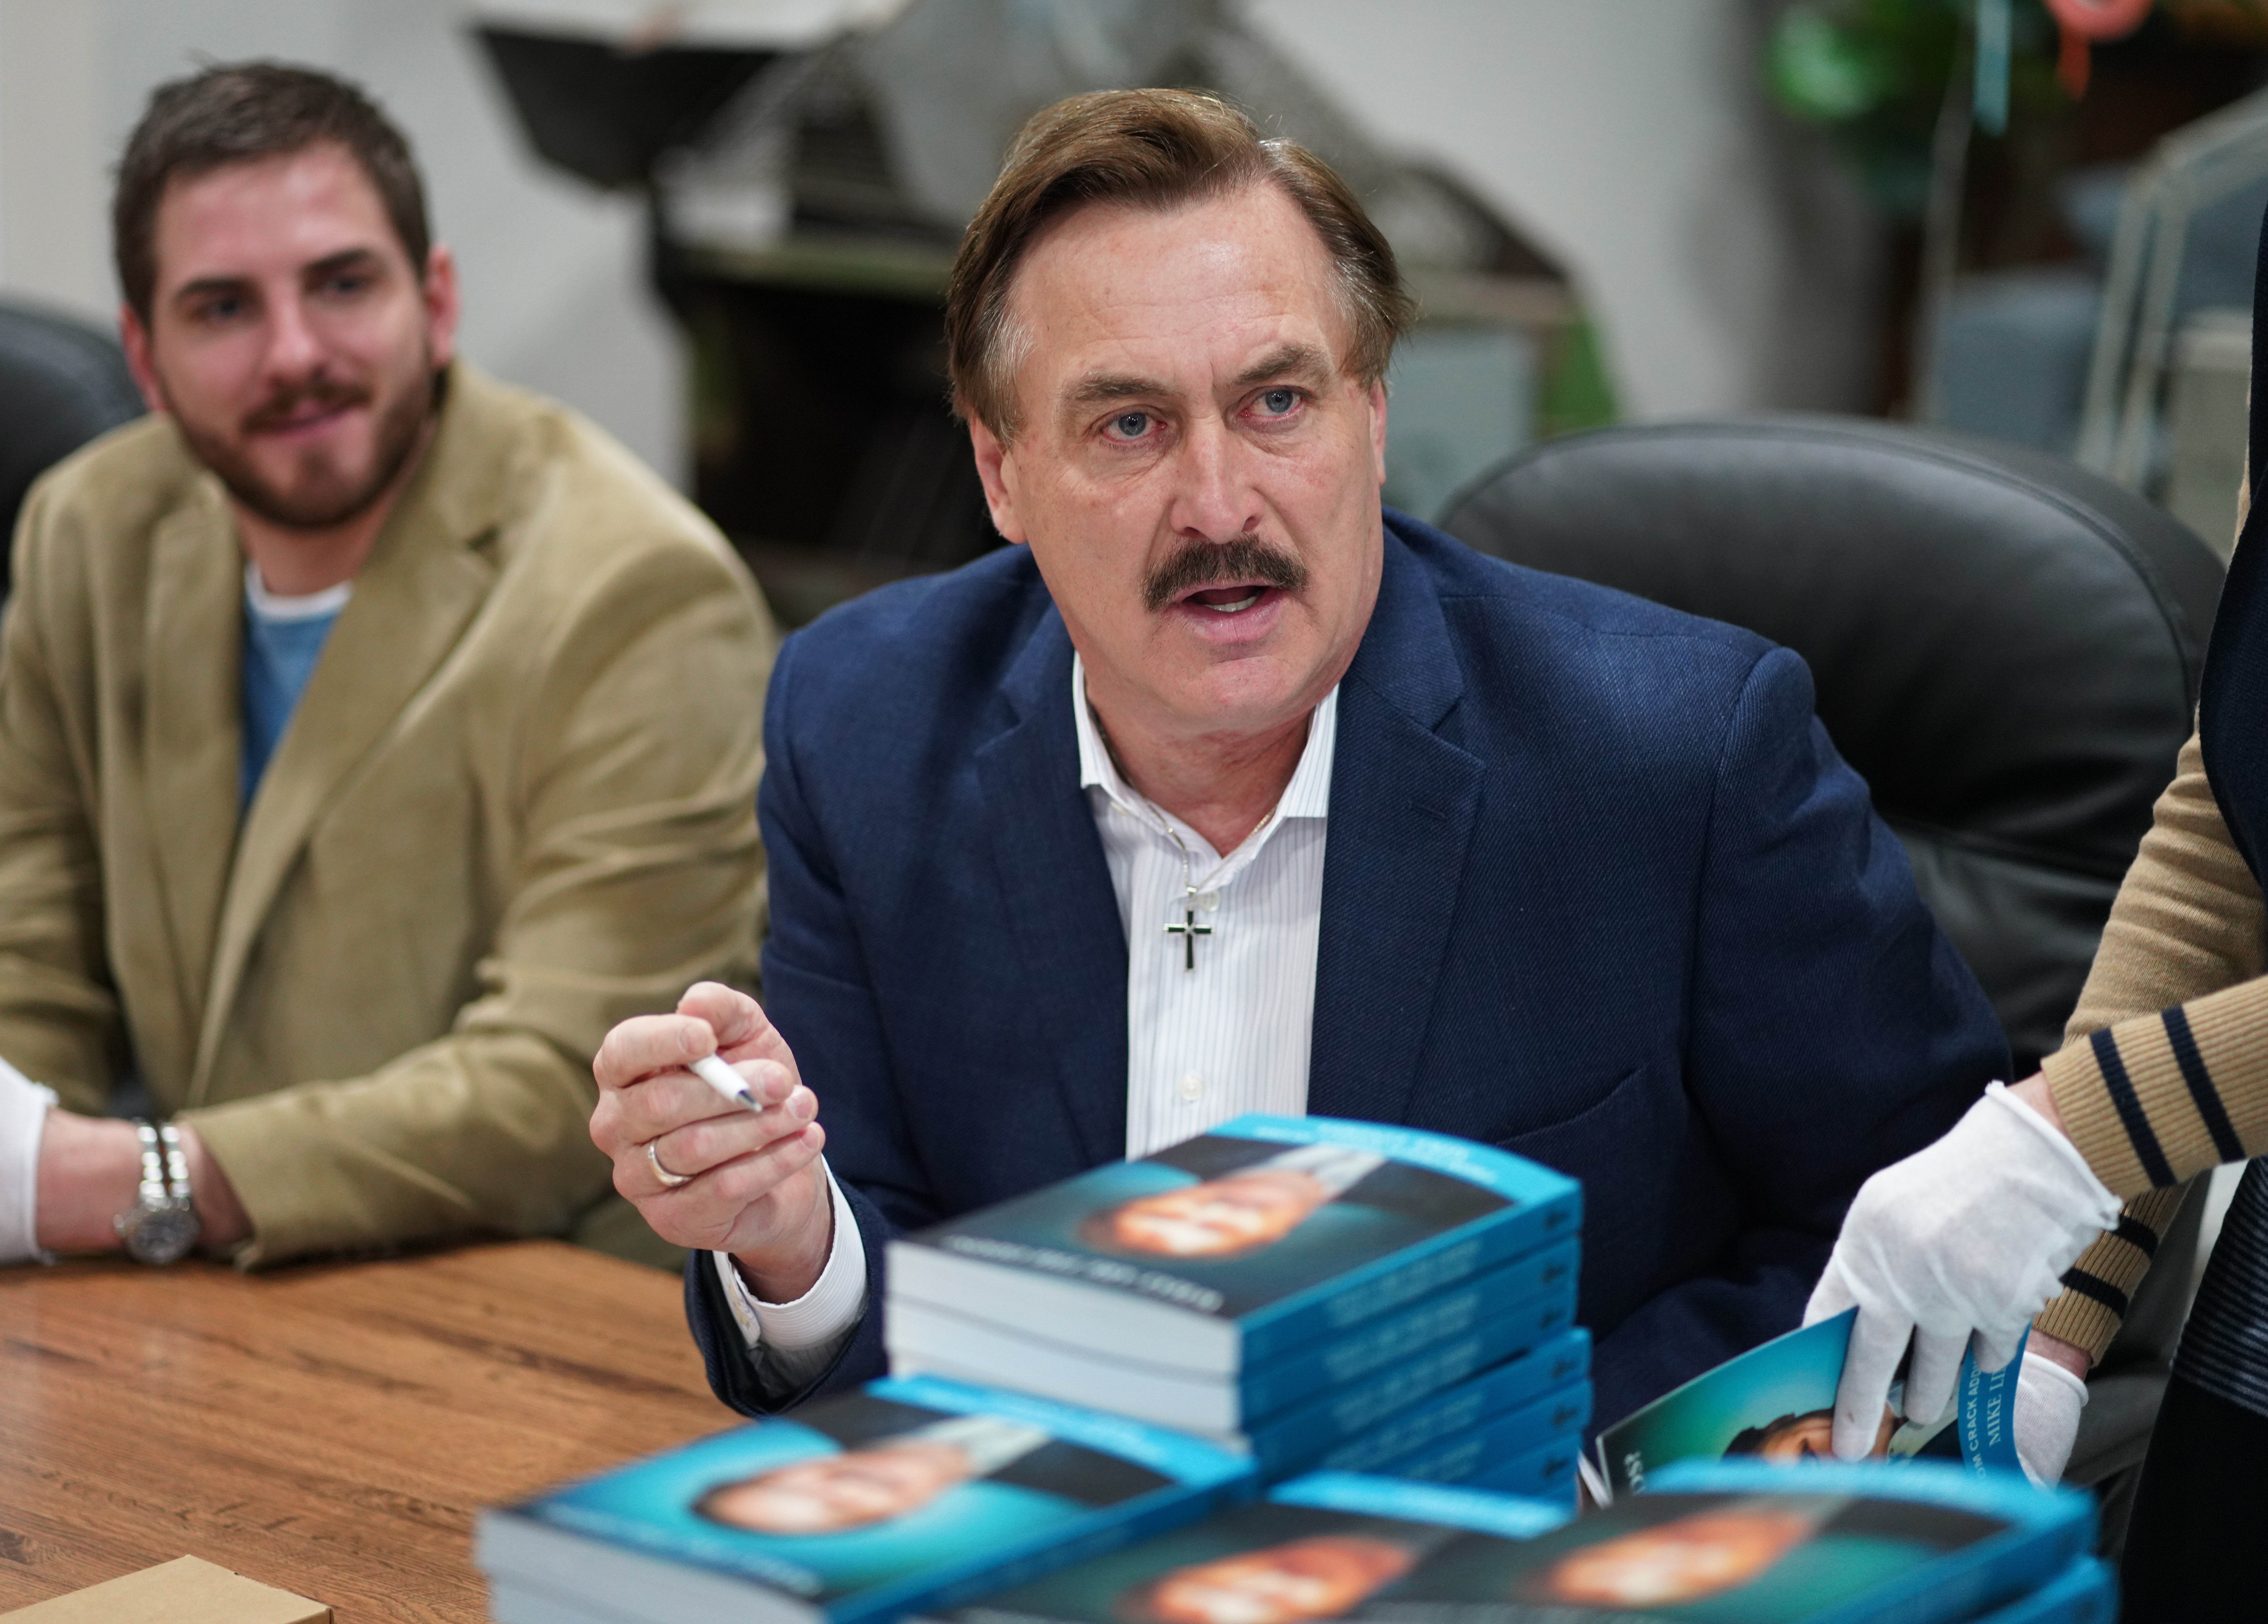 Lindell's baseless claims about election fraud have gotten him and MyPillow kicked off Twitter.